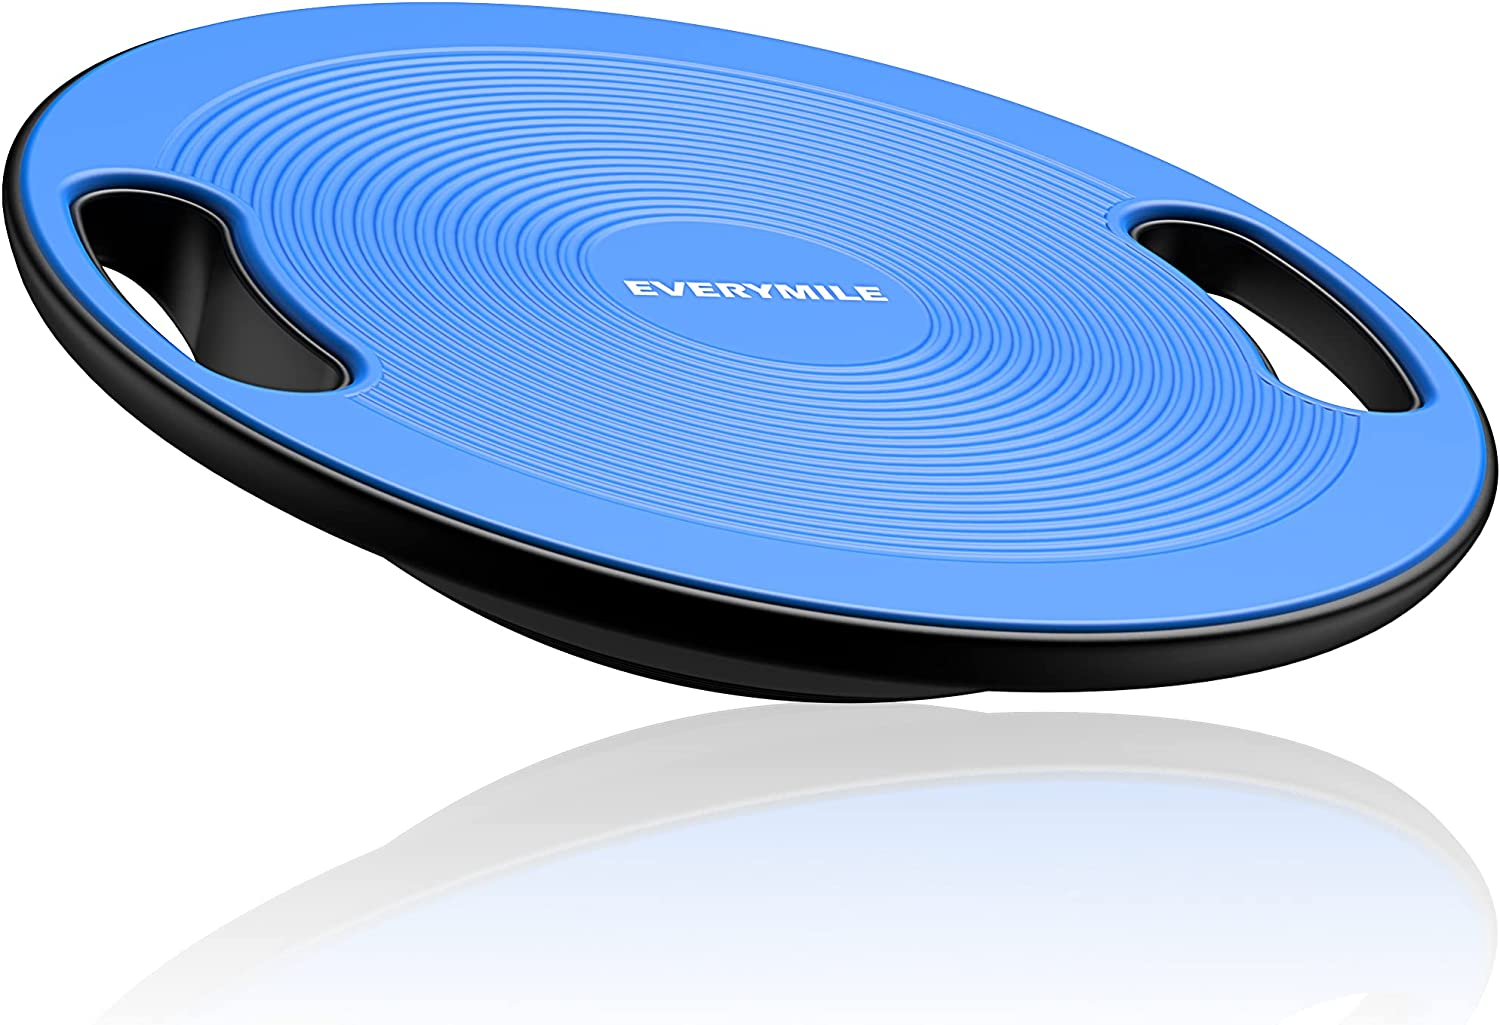 EVERYMILE Wobble Limited Los Angeles Mall price sale Balance Board Train Stability Exercise